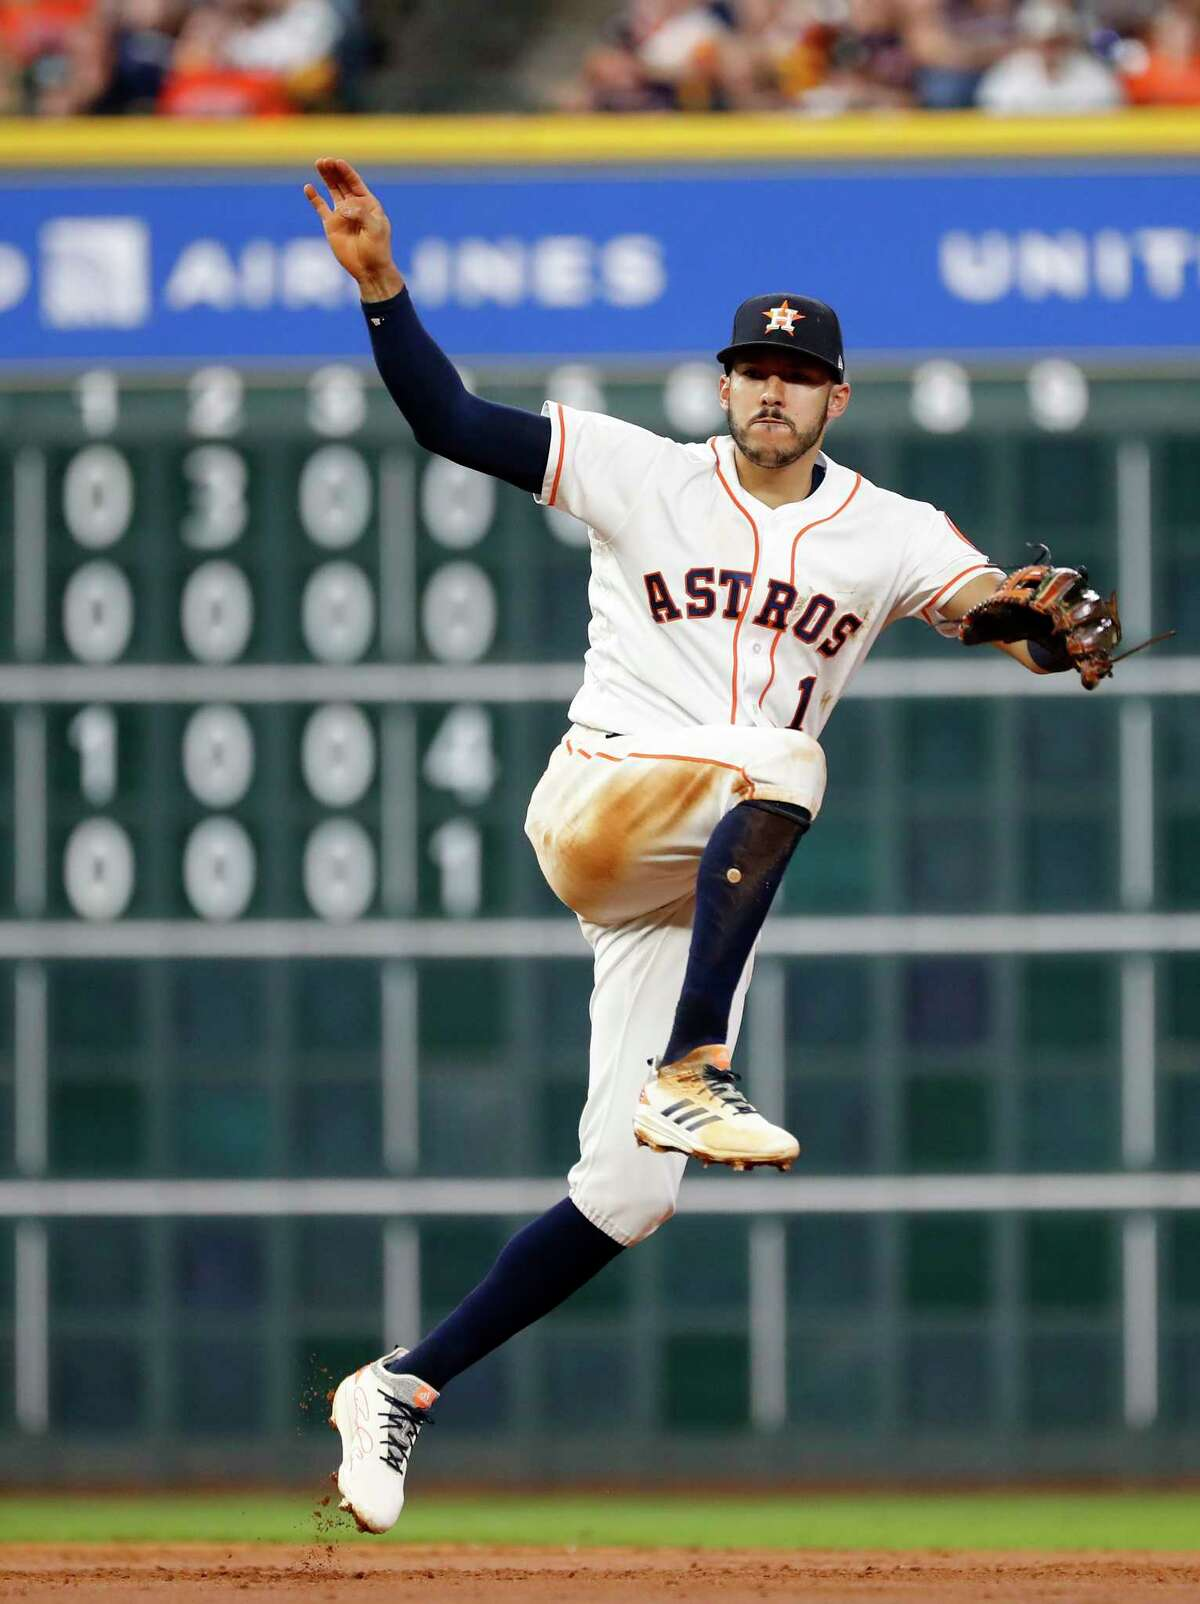 Houston Astros Carlos Correa (1) makes the throw to first as Seattle Mariners Nelson Cruz (23) ground into a double play during the third inning of an MLB game at Minute Maid Park, Monday, September 17, 2018, in Houston.